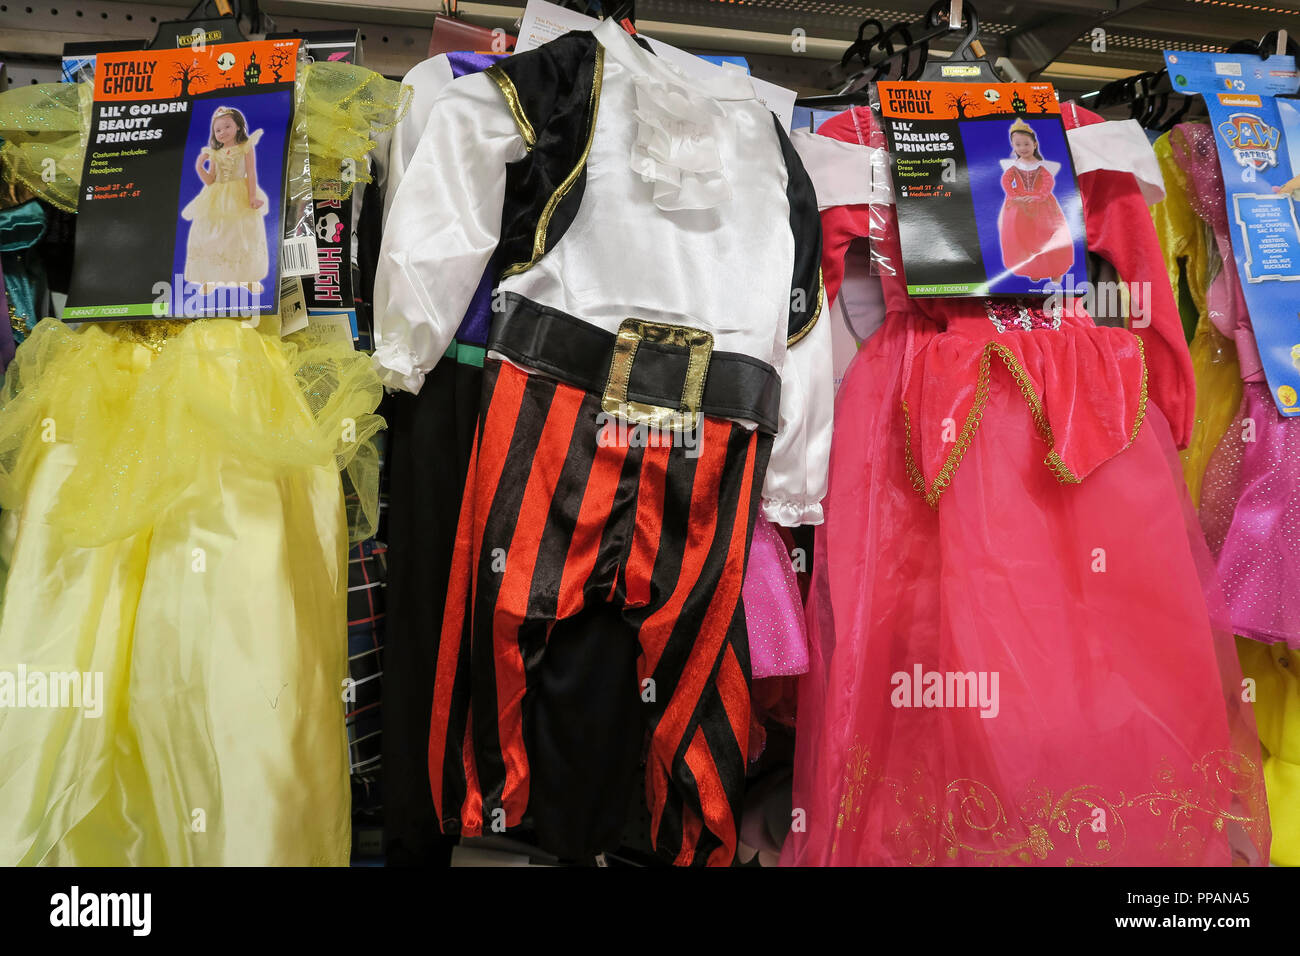 halloween decorations, usa stock photo: 220283117 - alamy